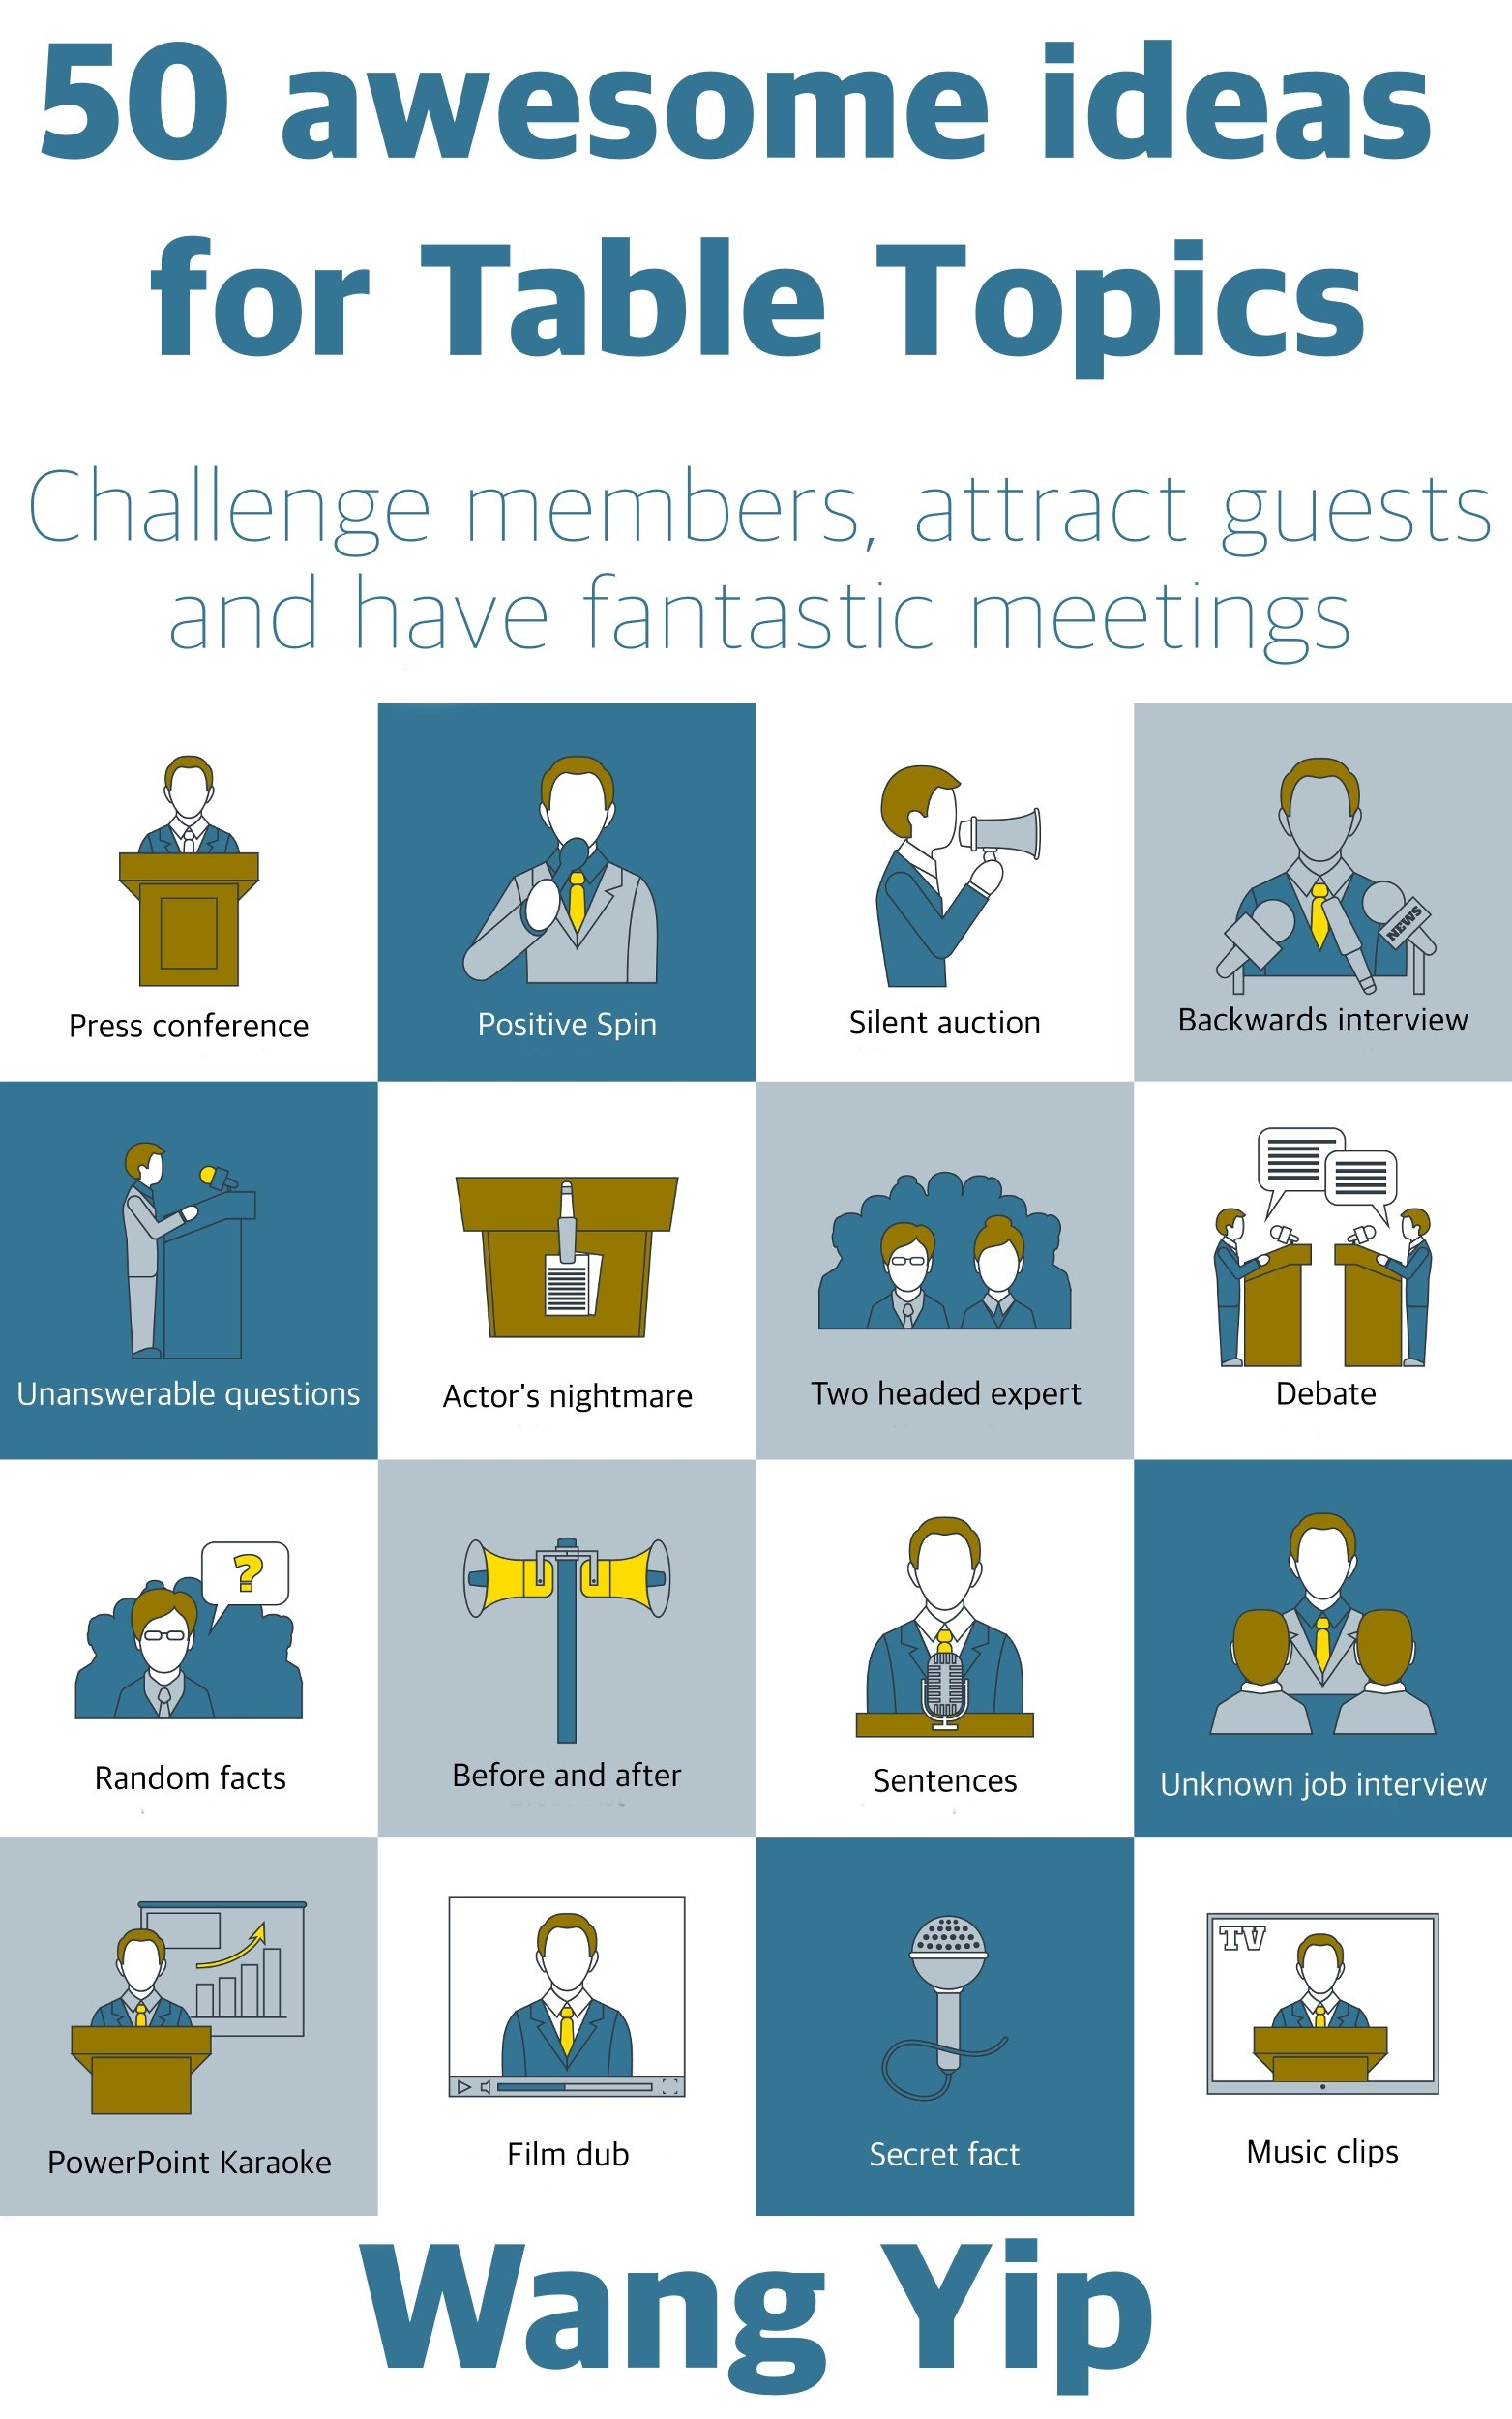 50 awesome ideas for table topics: Challenge members, attract guests and have fantastic meetings